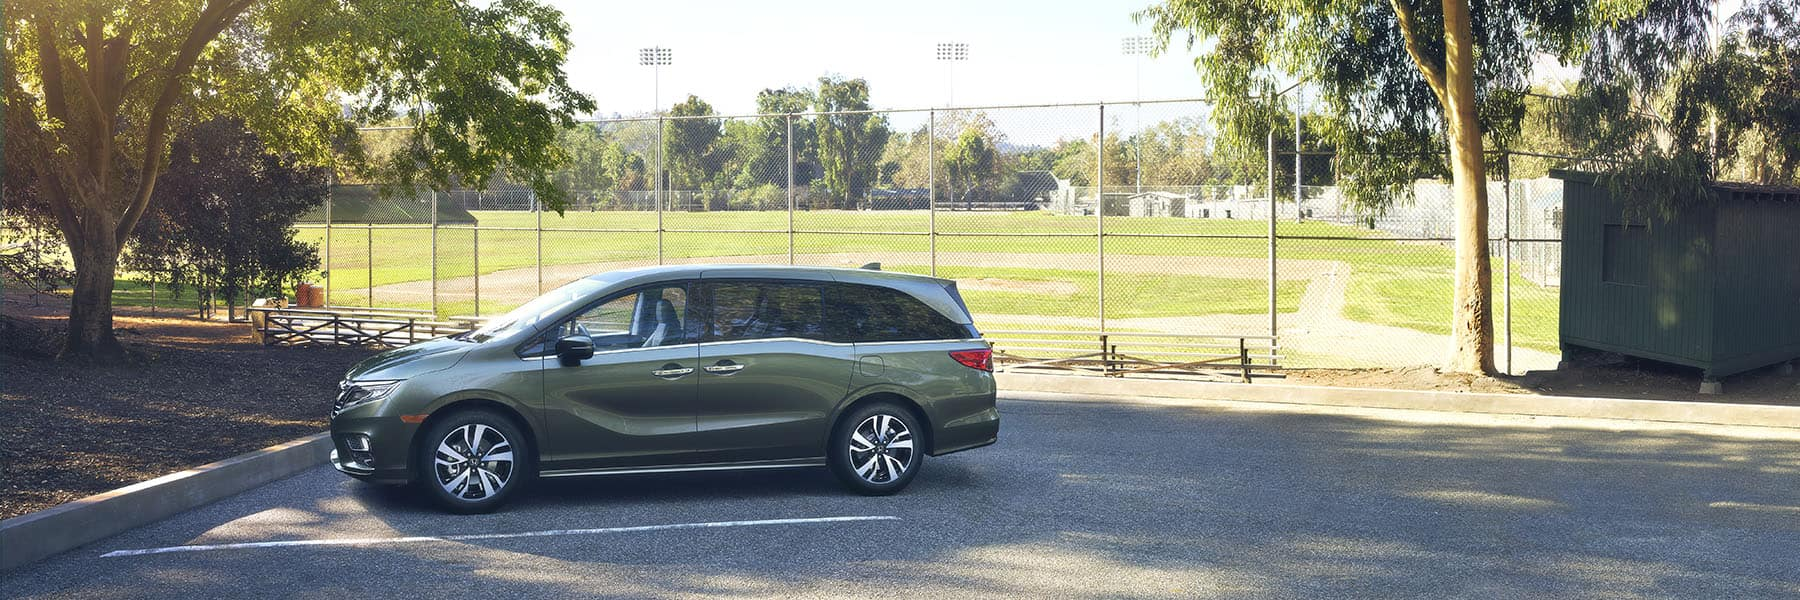 Marvelous The Honda Odyssey Comes Packed With Convenience Features And Impressive  Capabilities That Make It An Excellent Minivan For Handling Life In Queens  And Long ...